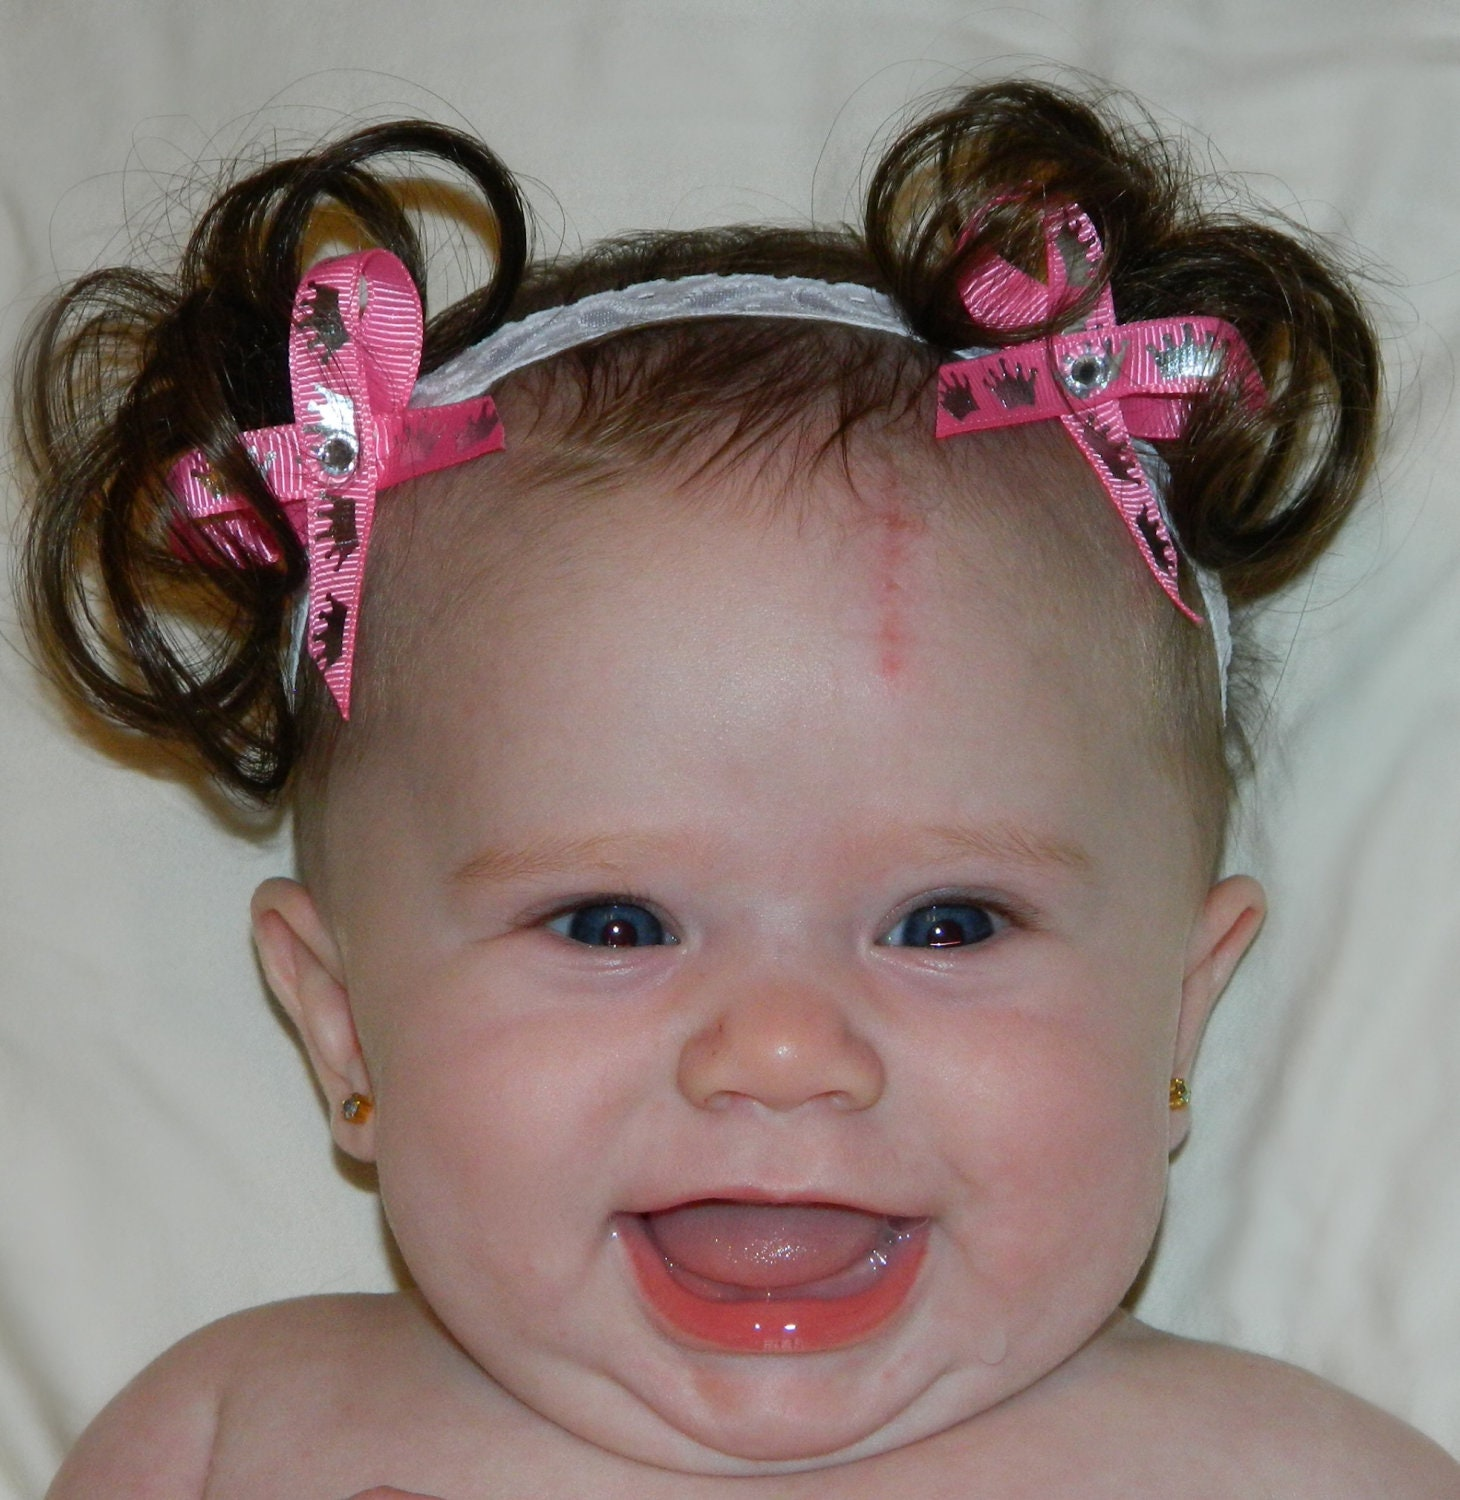 Baby Ponytail Pigtails Headbands